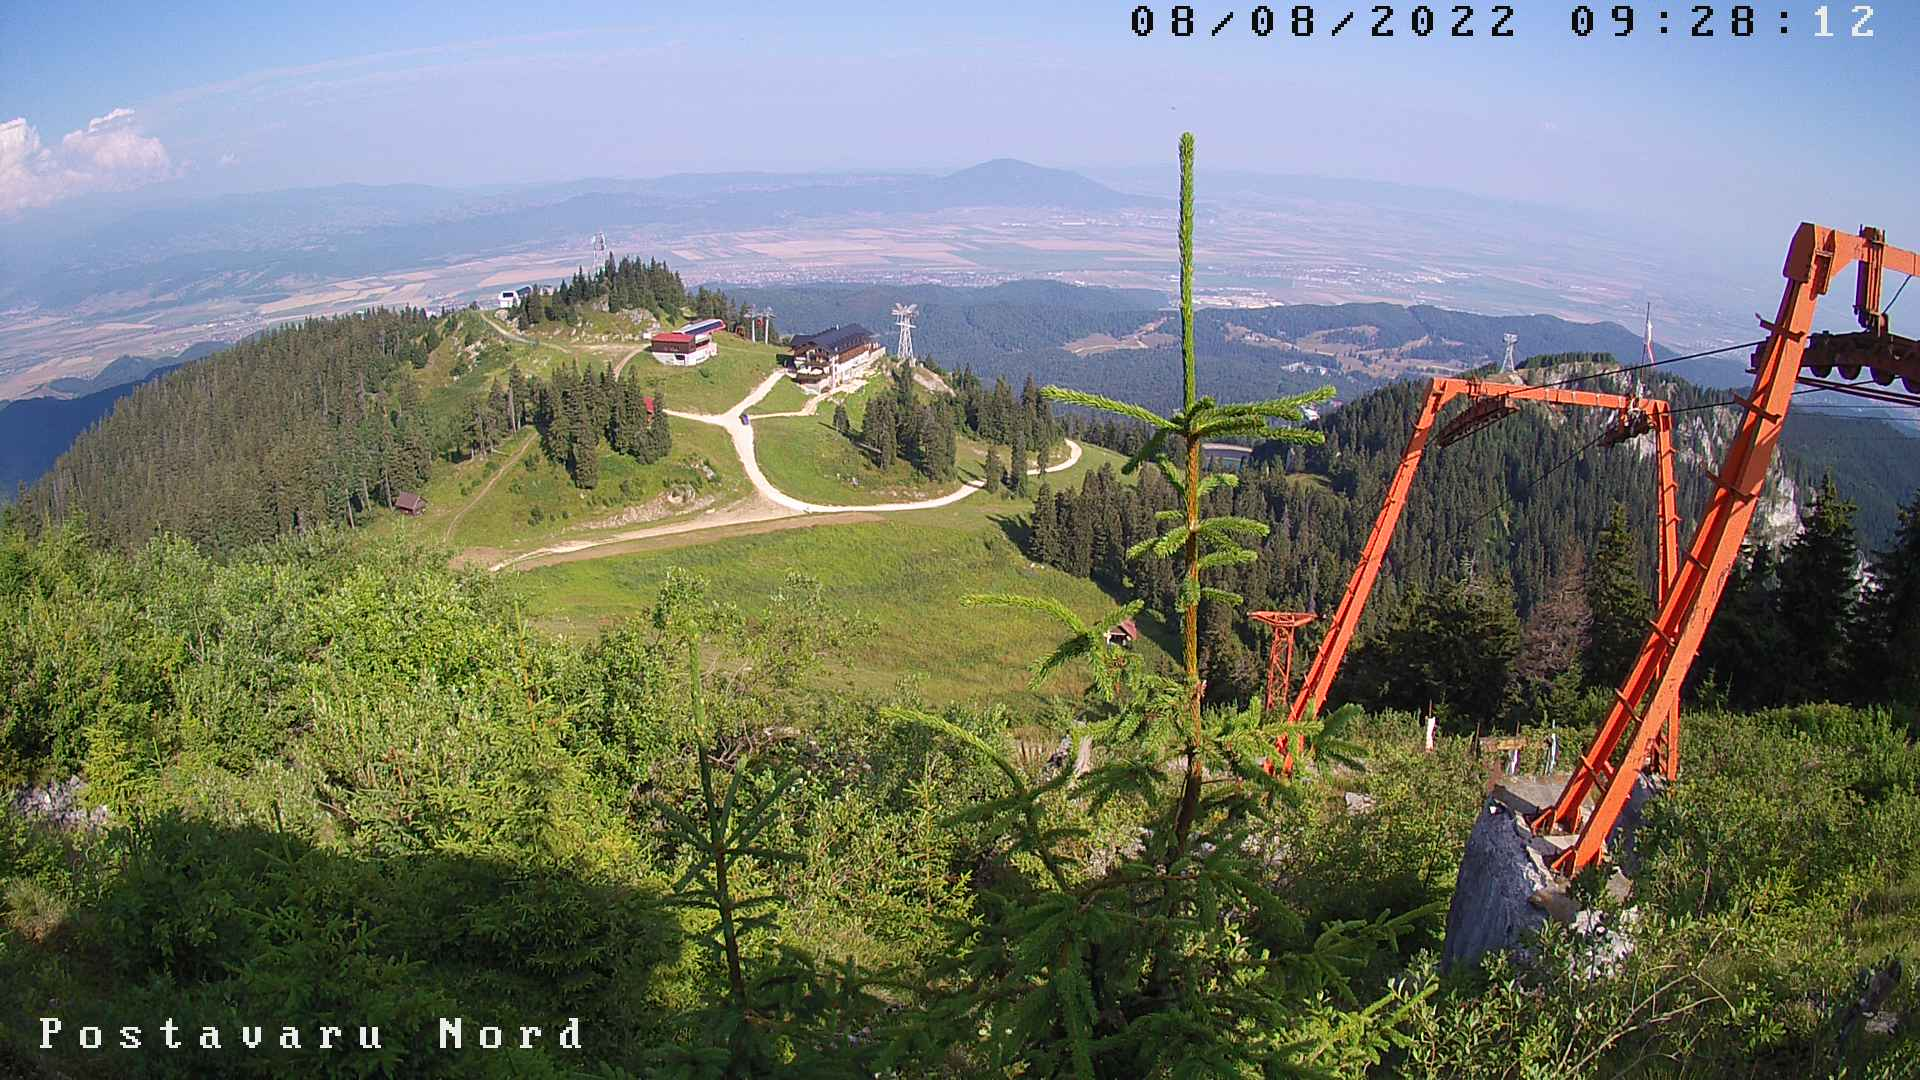 WebCam Postavaru Nord